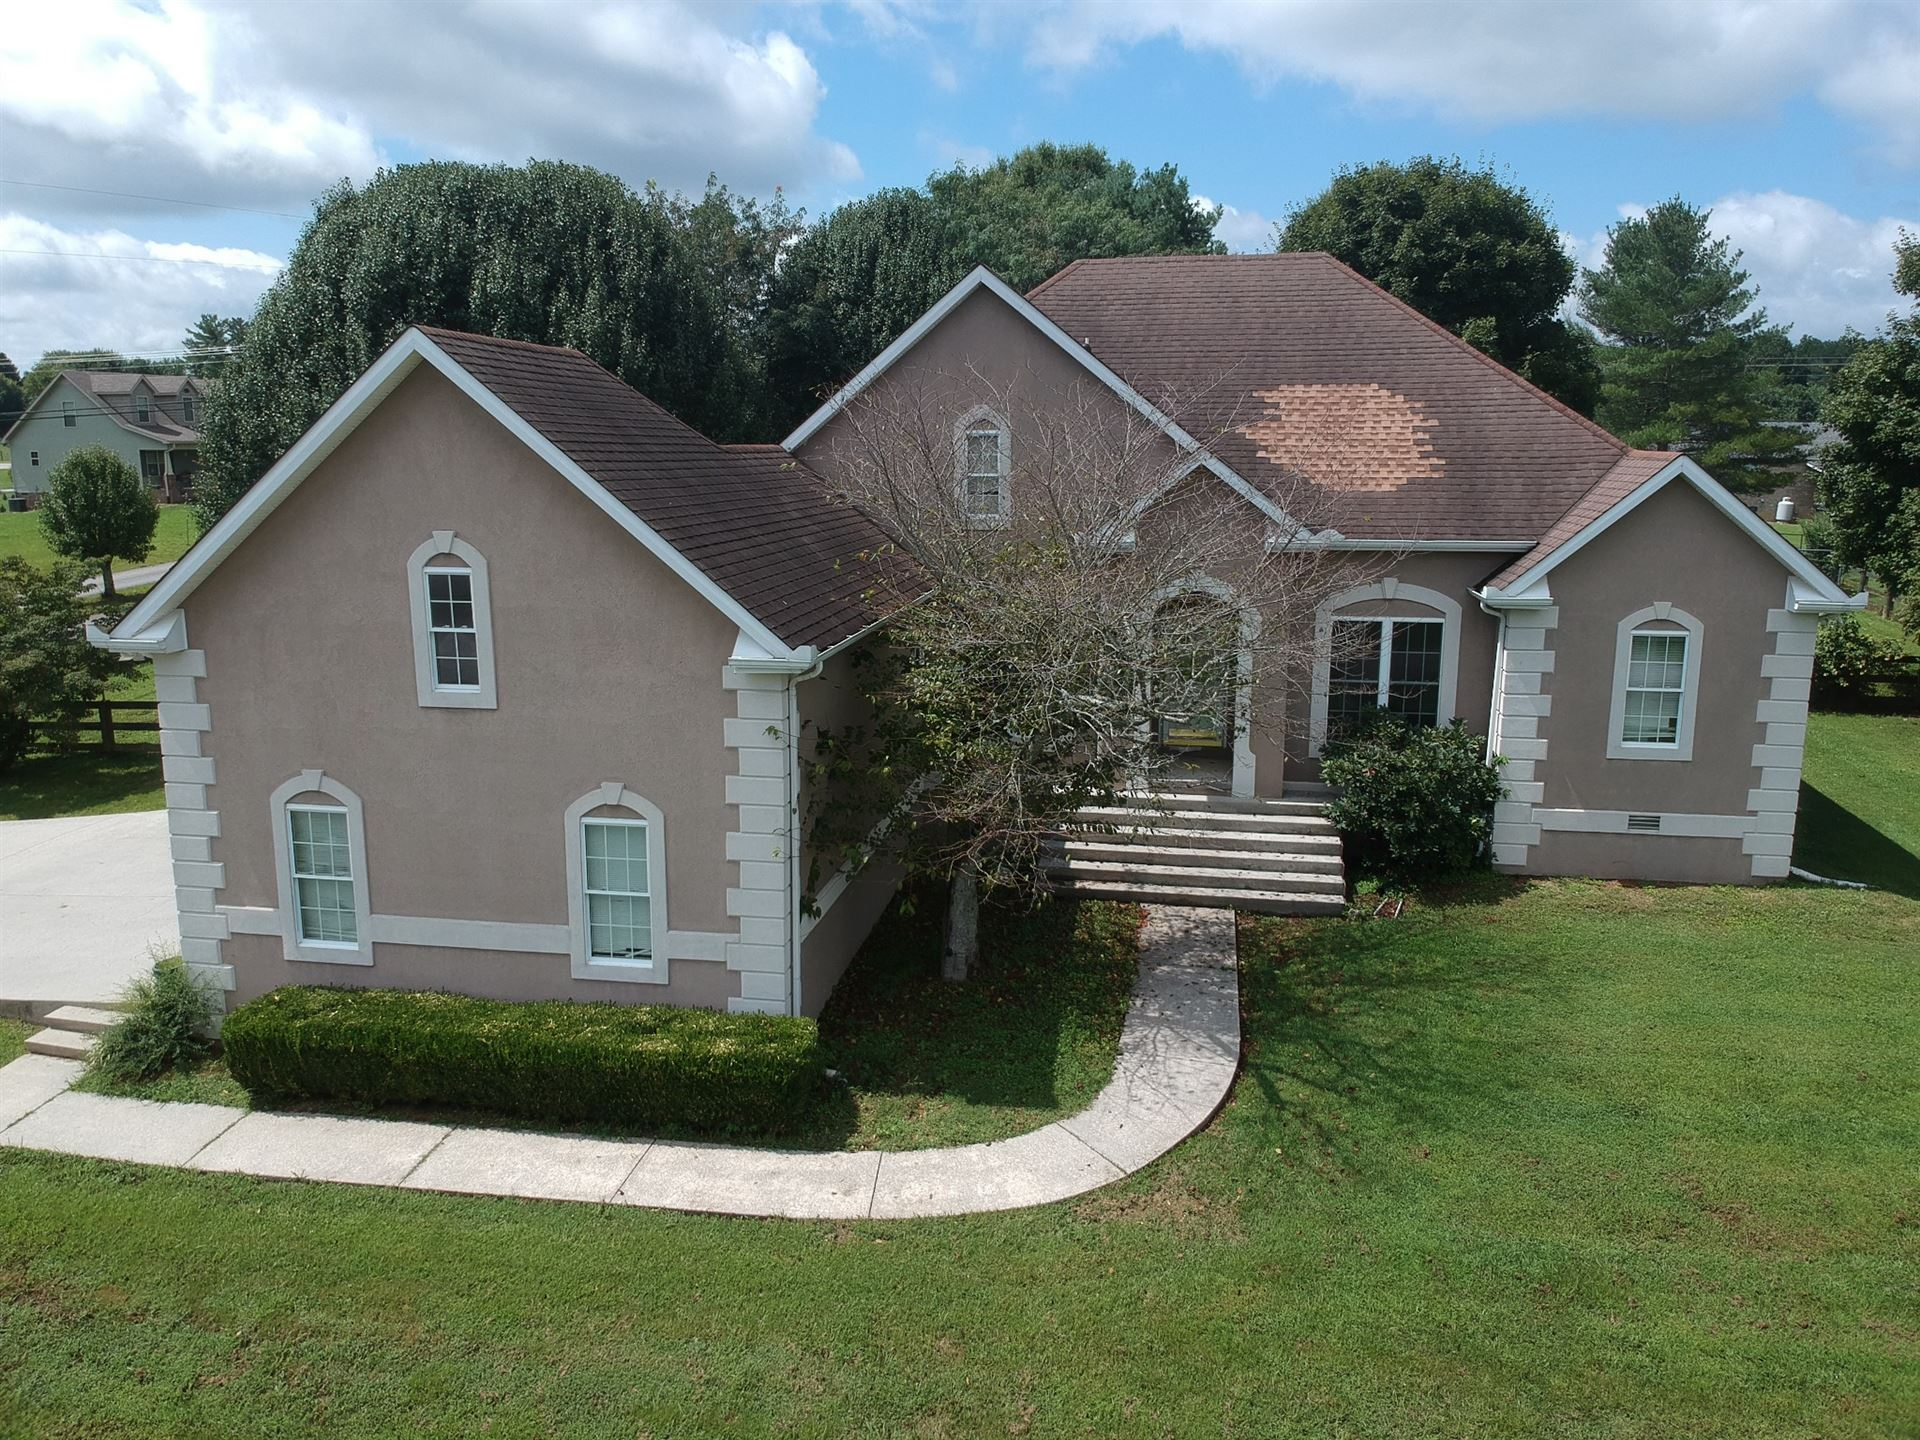 65 Maple Springs Dr, Manchester, TN 37355 - MLS#: 2286657